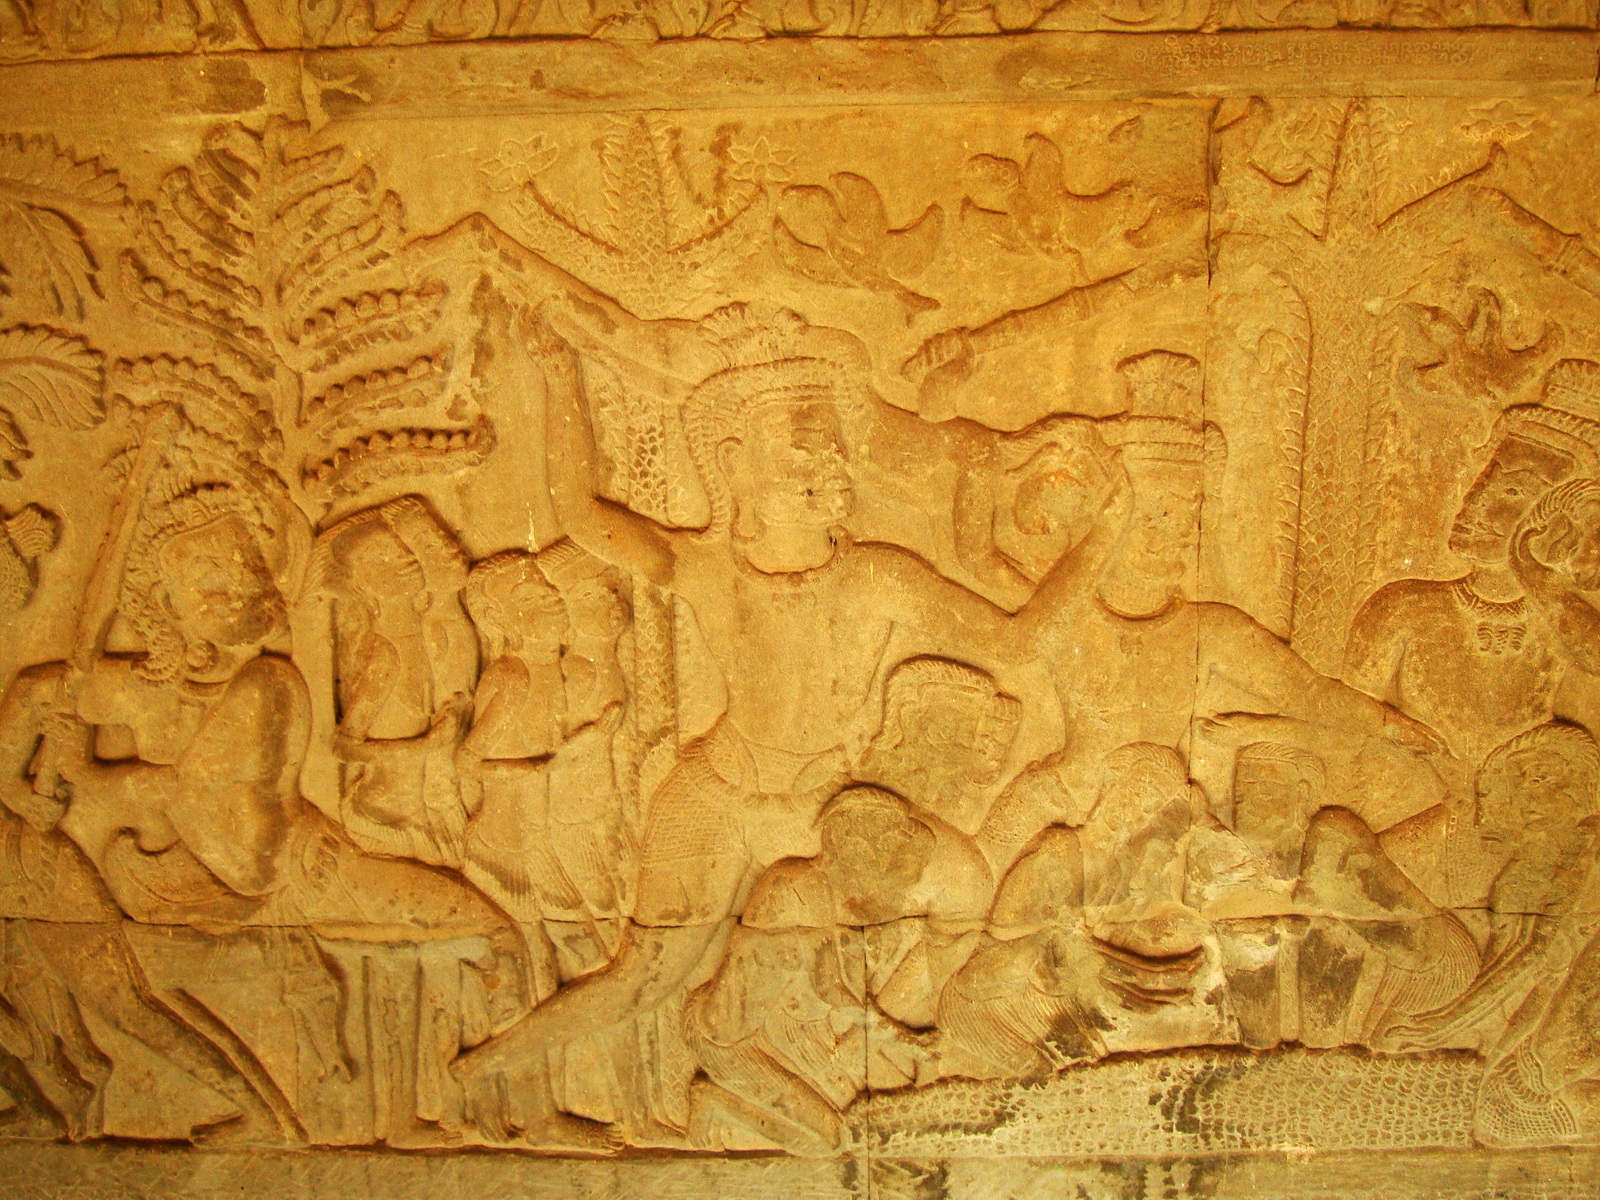 Angkor Wat Bas relief S Gallery E Wing Heavens and Hells 71